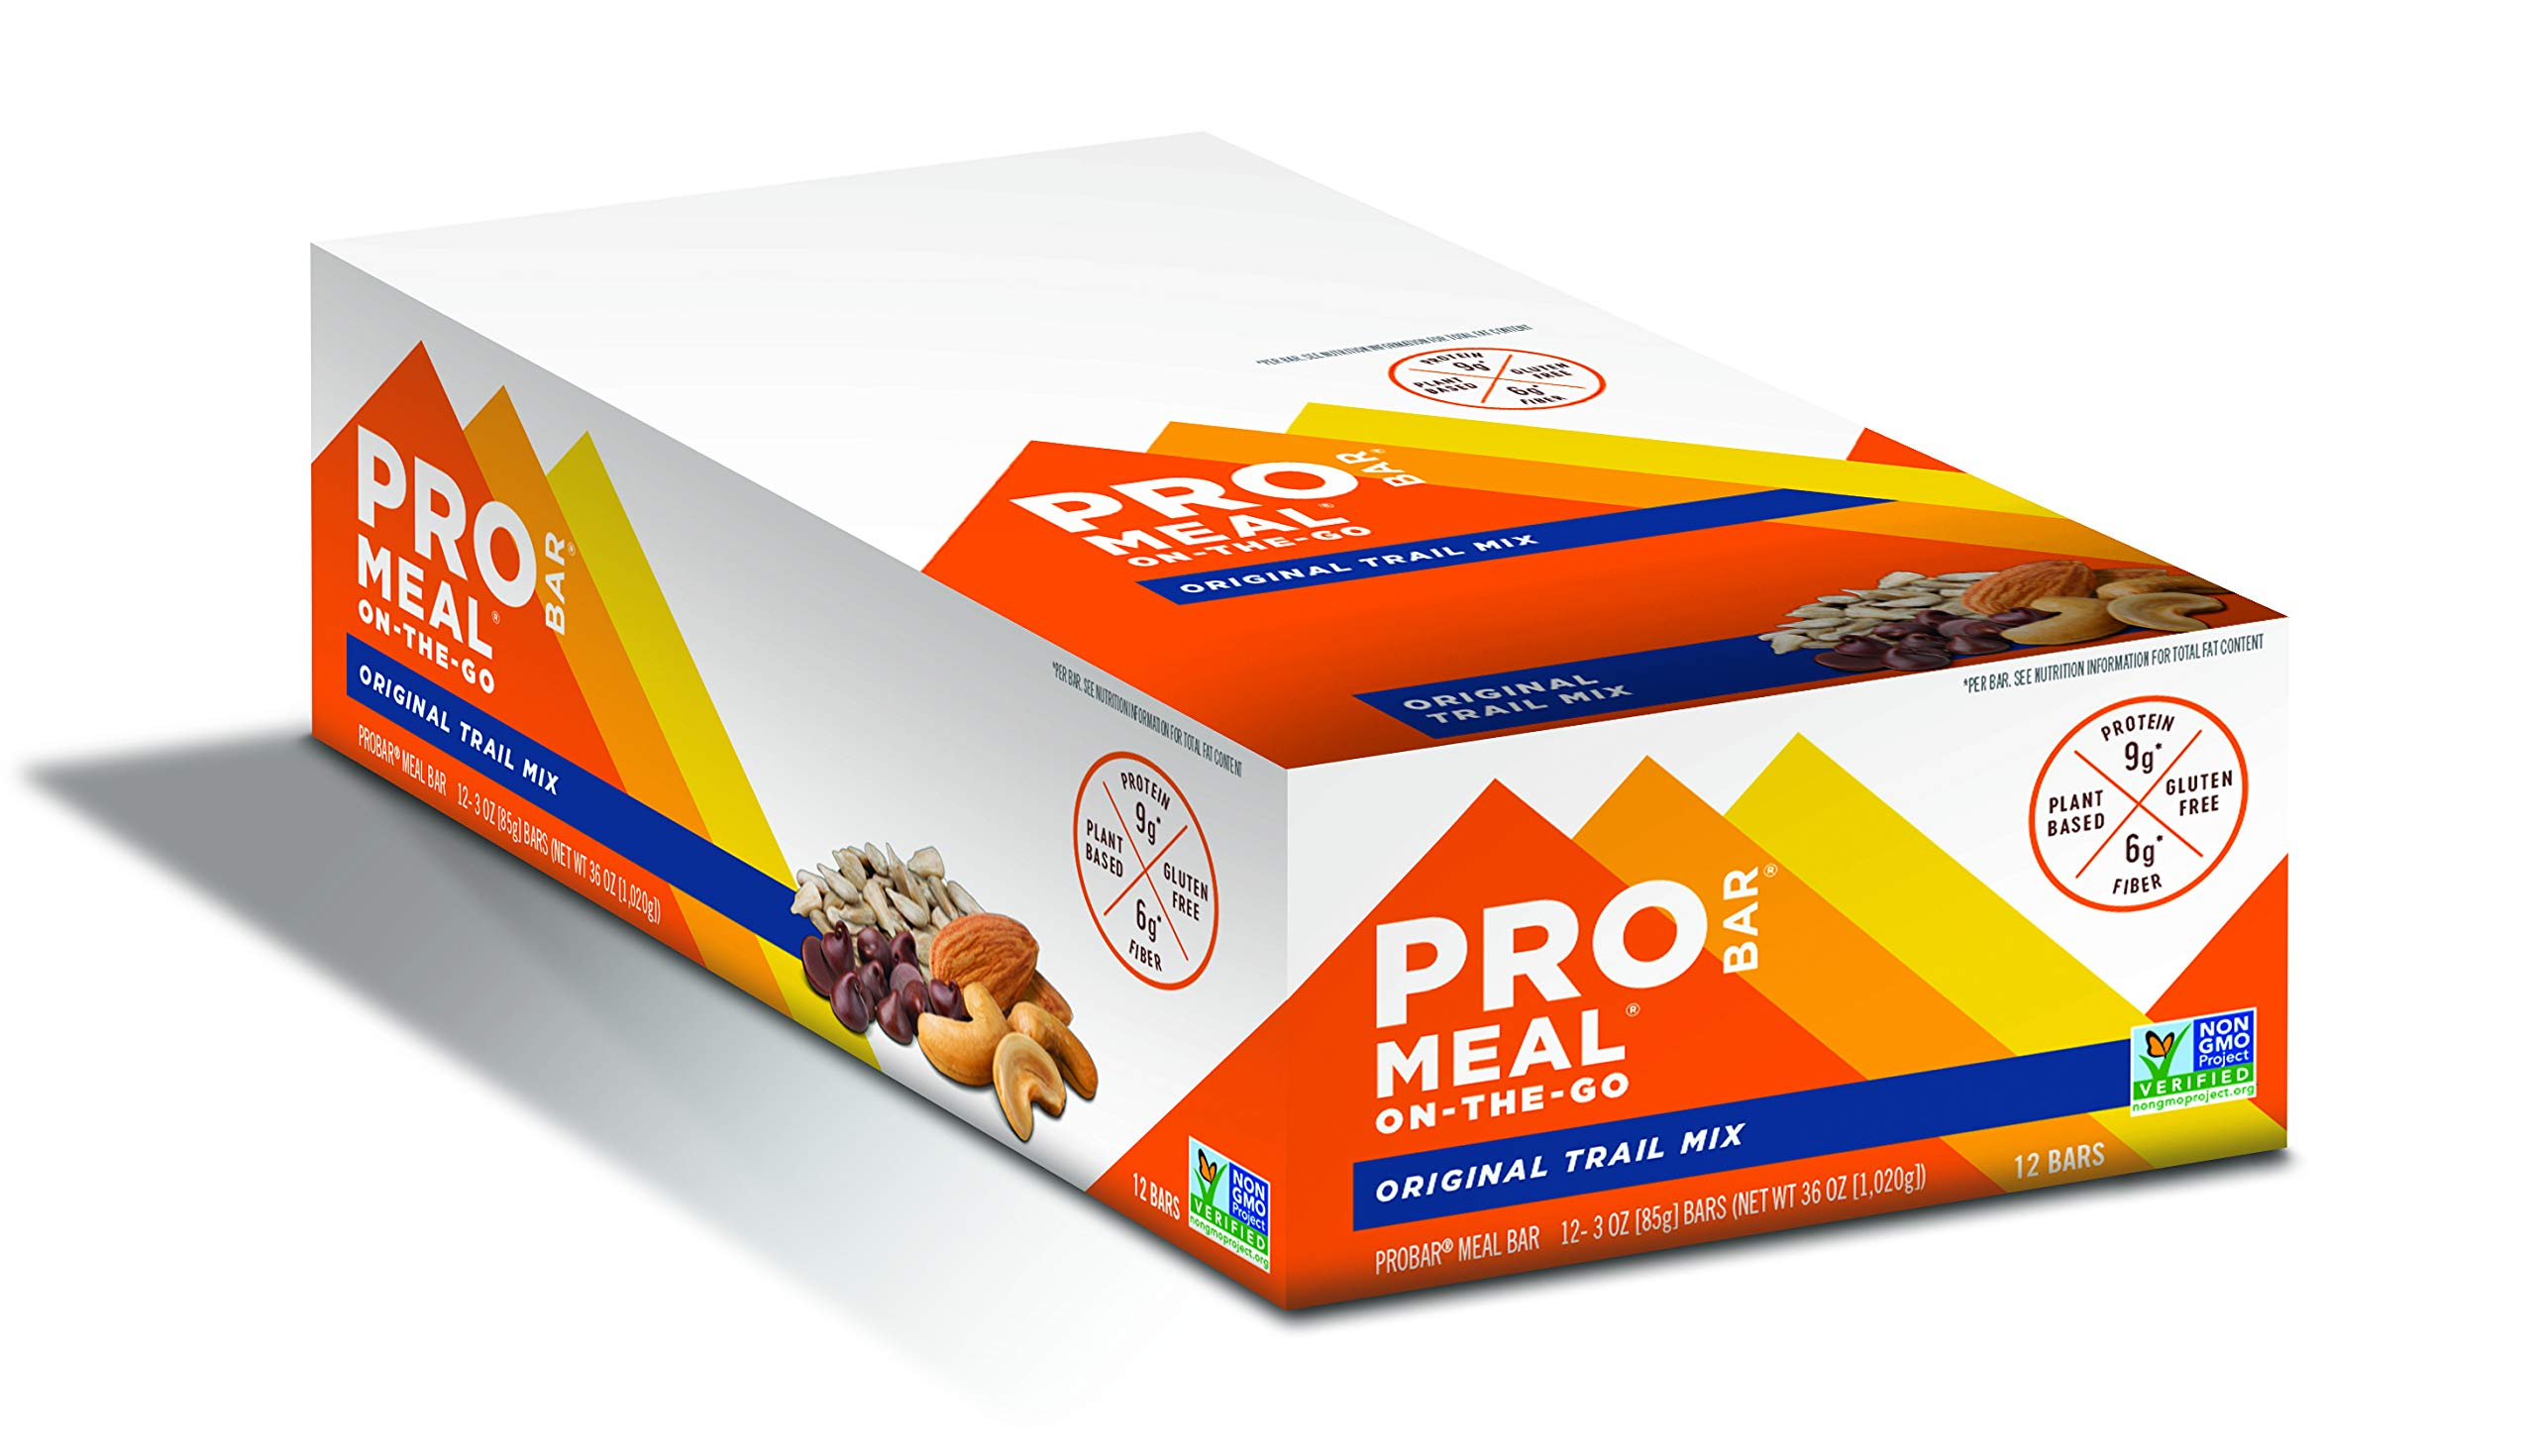 PROBAR - Meal Bar, Original Trail Mix, Non-GMO, Gluten-Free, Certified Organic, Healthy, Plant-Based Whole Food Ingredients, Natural Energy (12 Count)